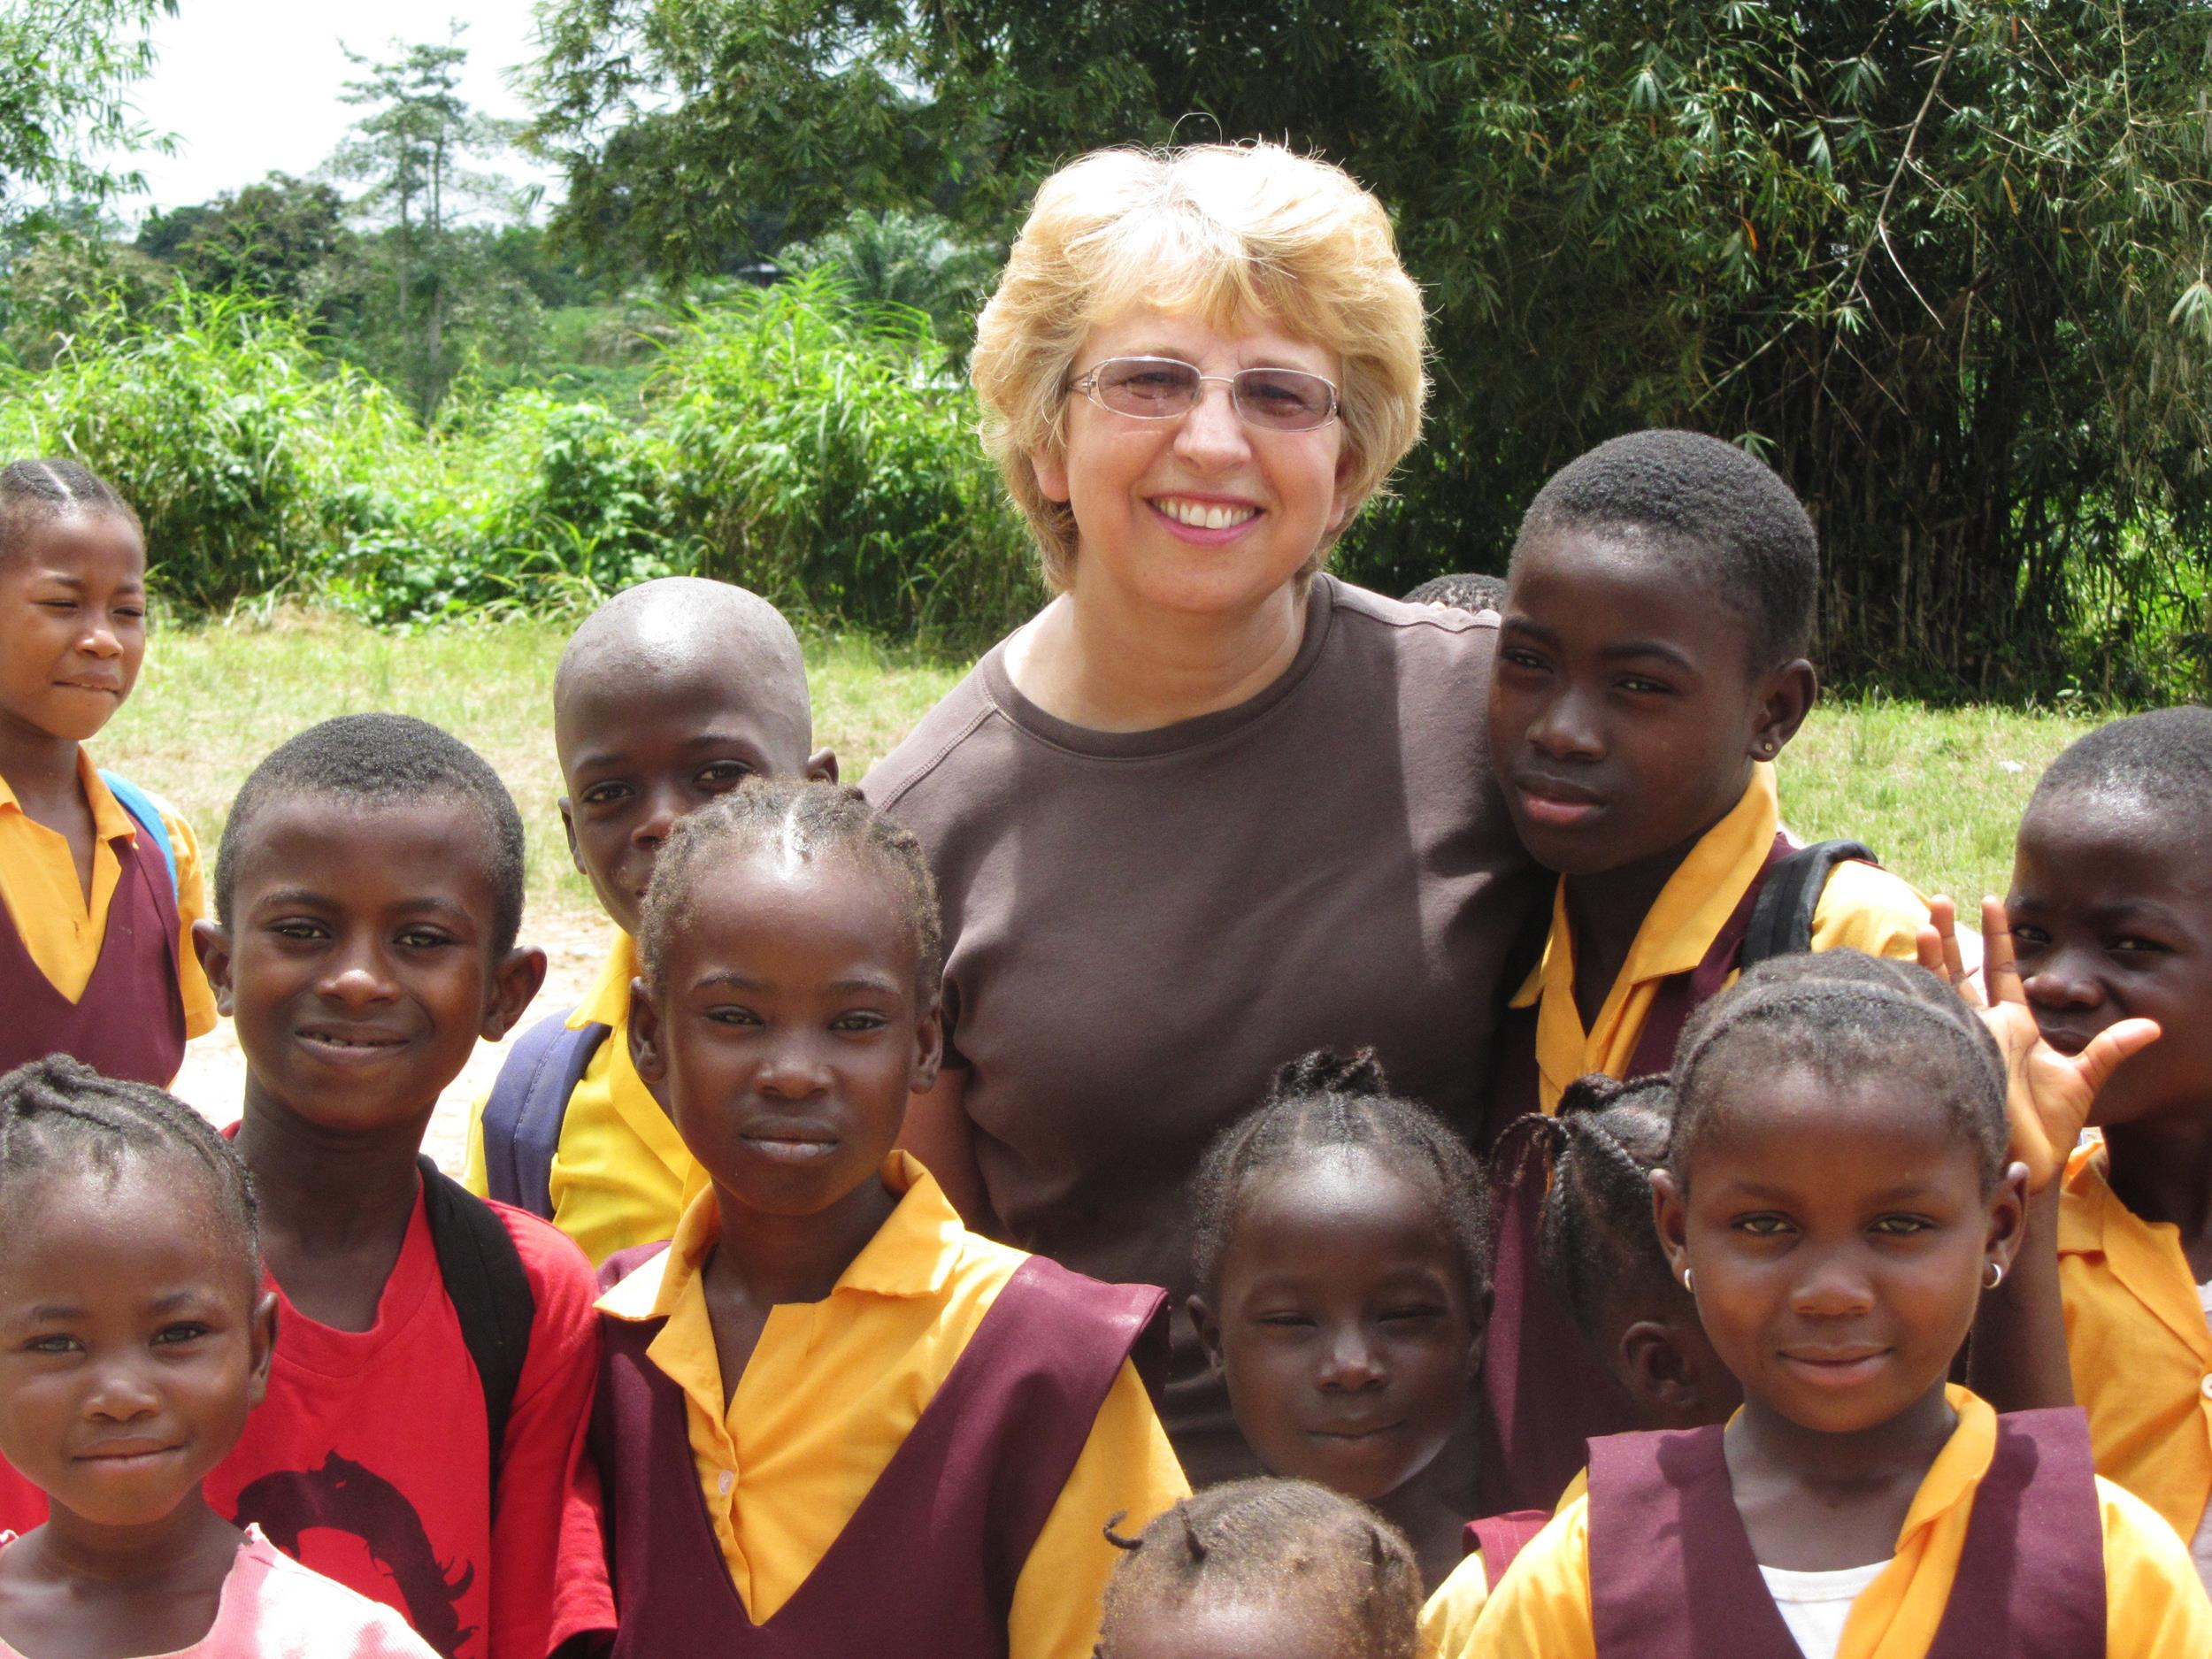 Image: Nancy Writebol with children in Liberia